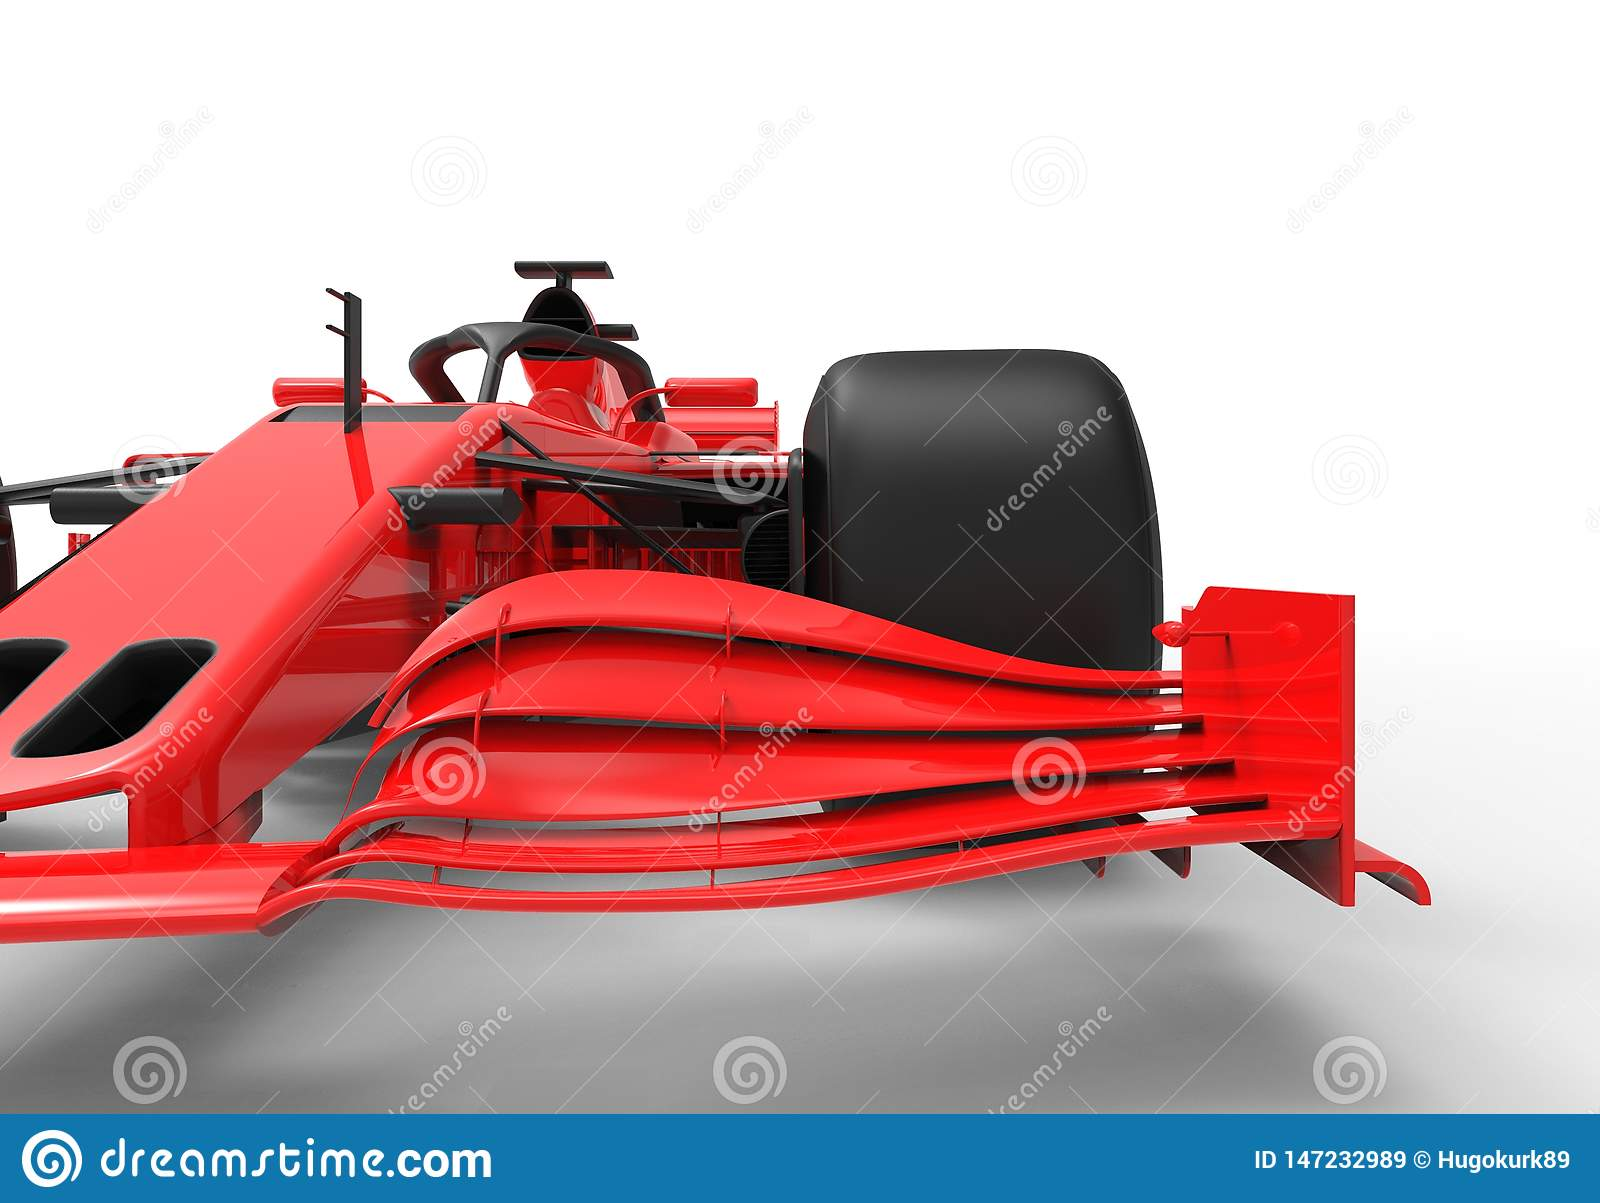 Modern red sports race car isolated